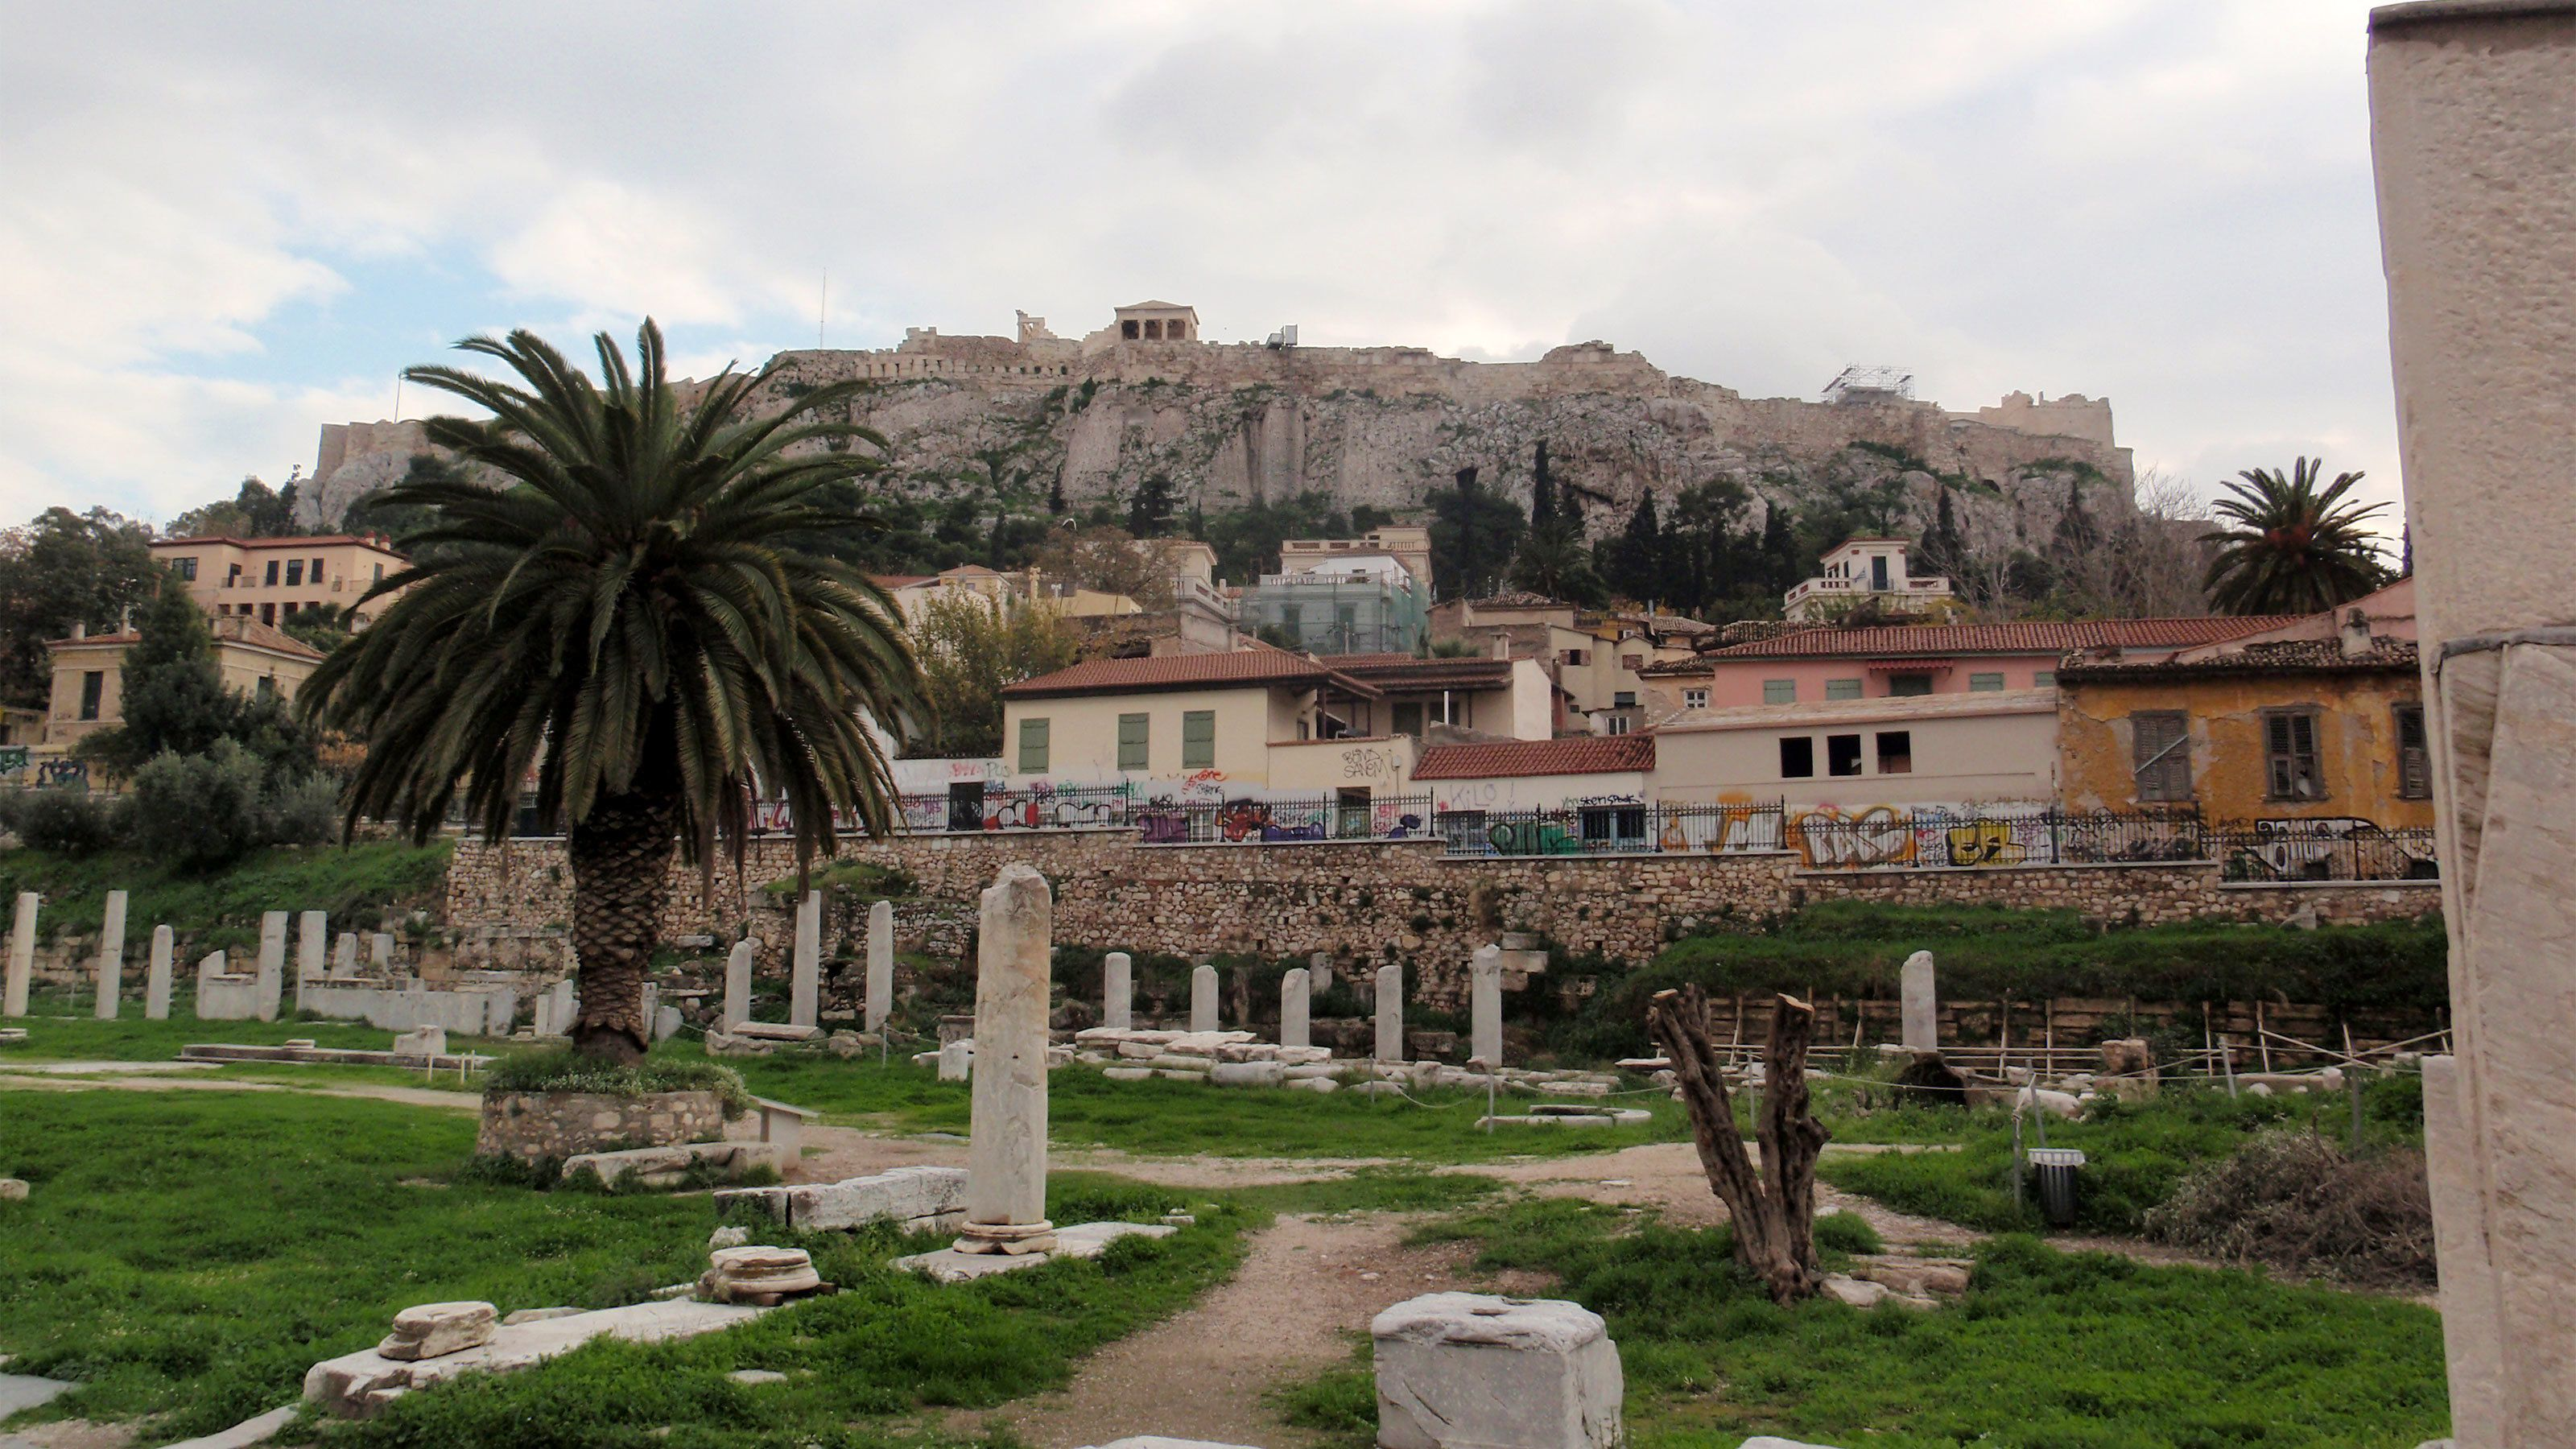 Ruins and homes near the Plaka District in Athens